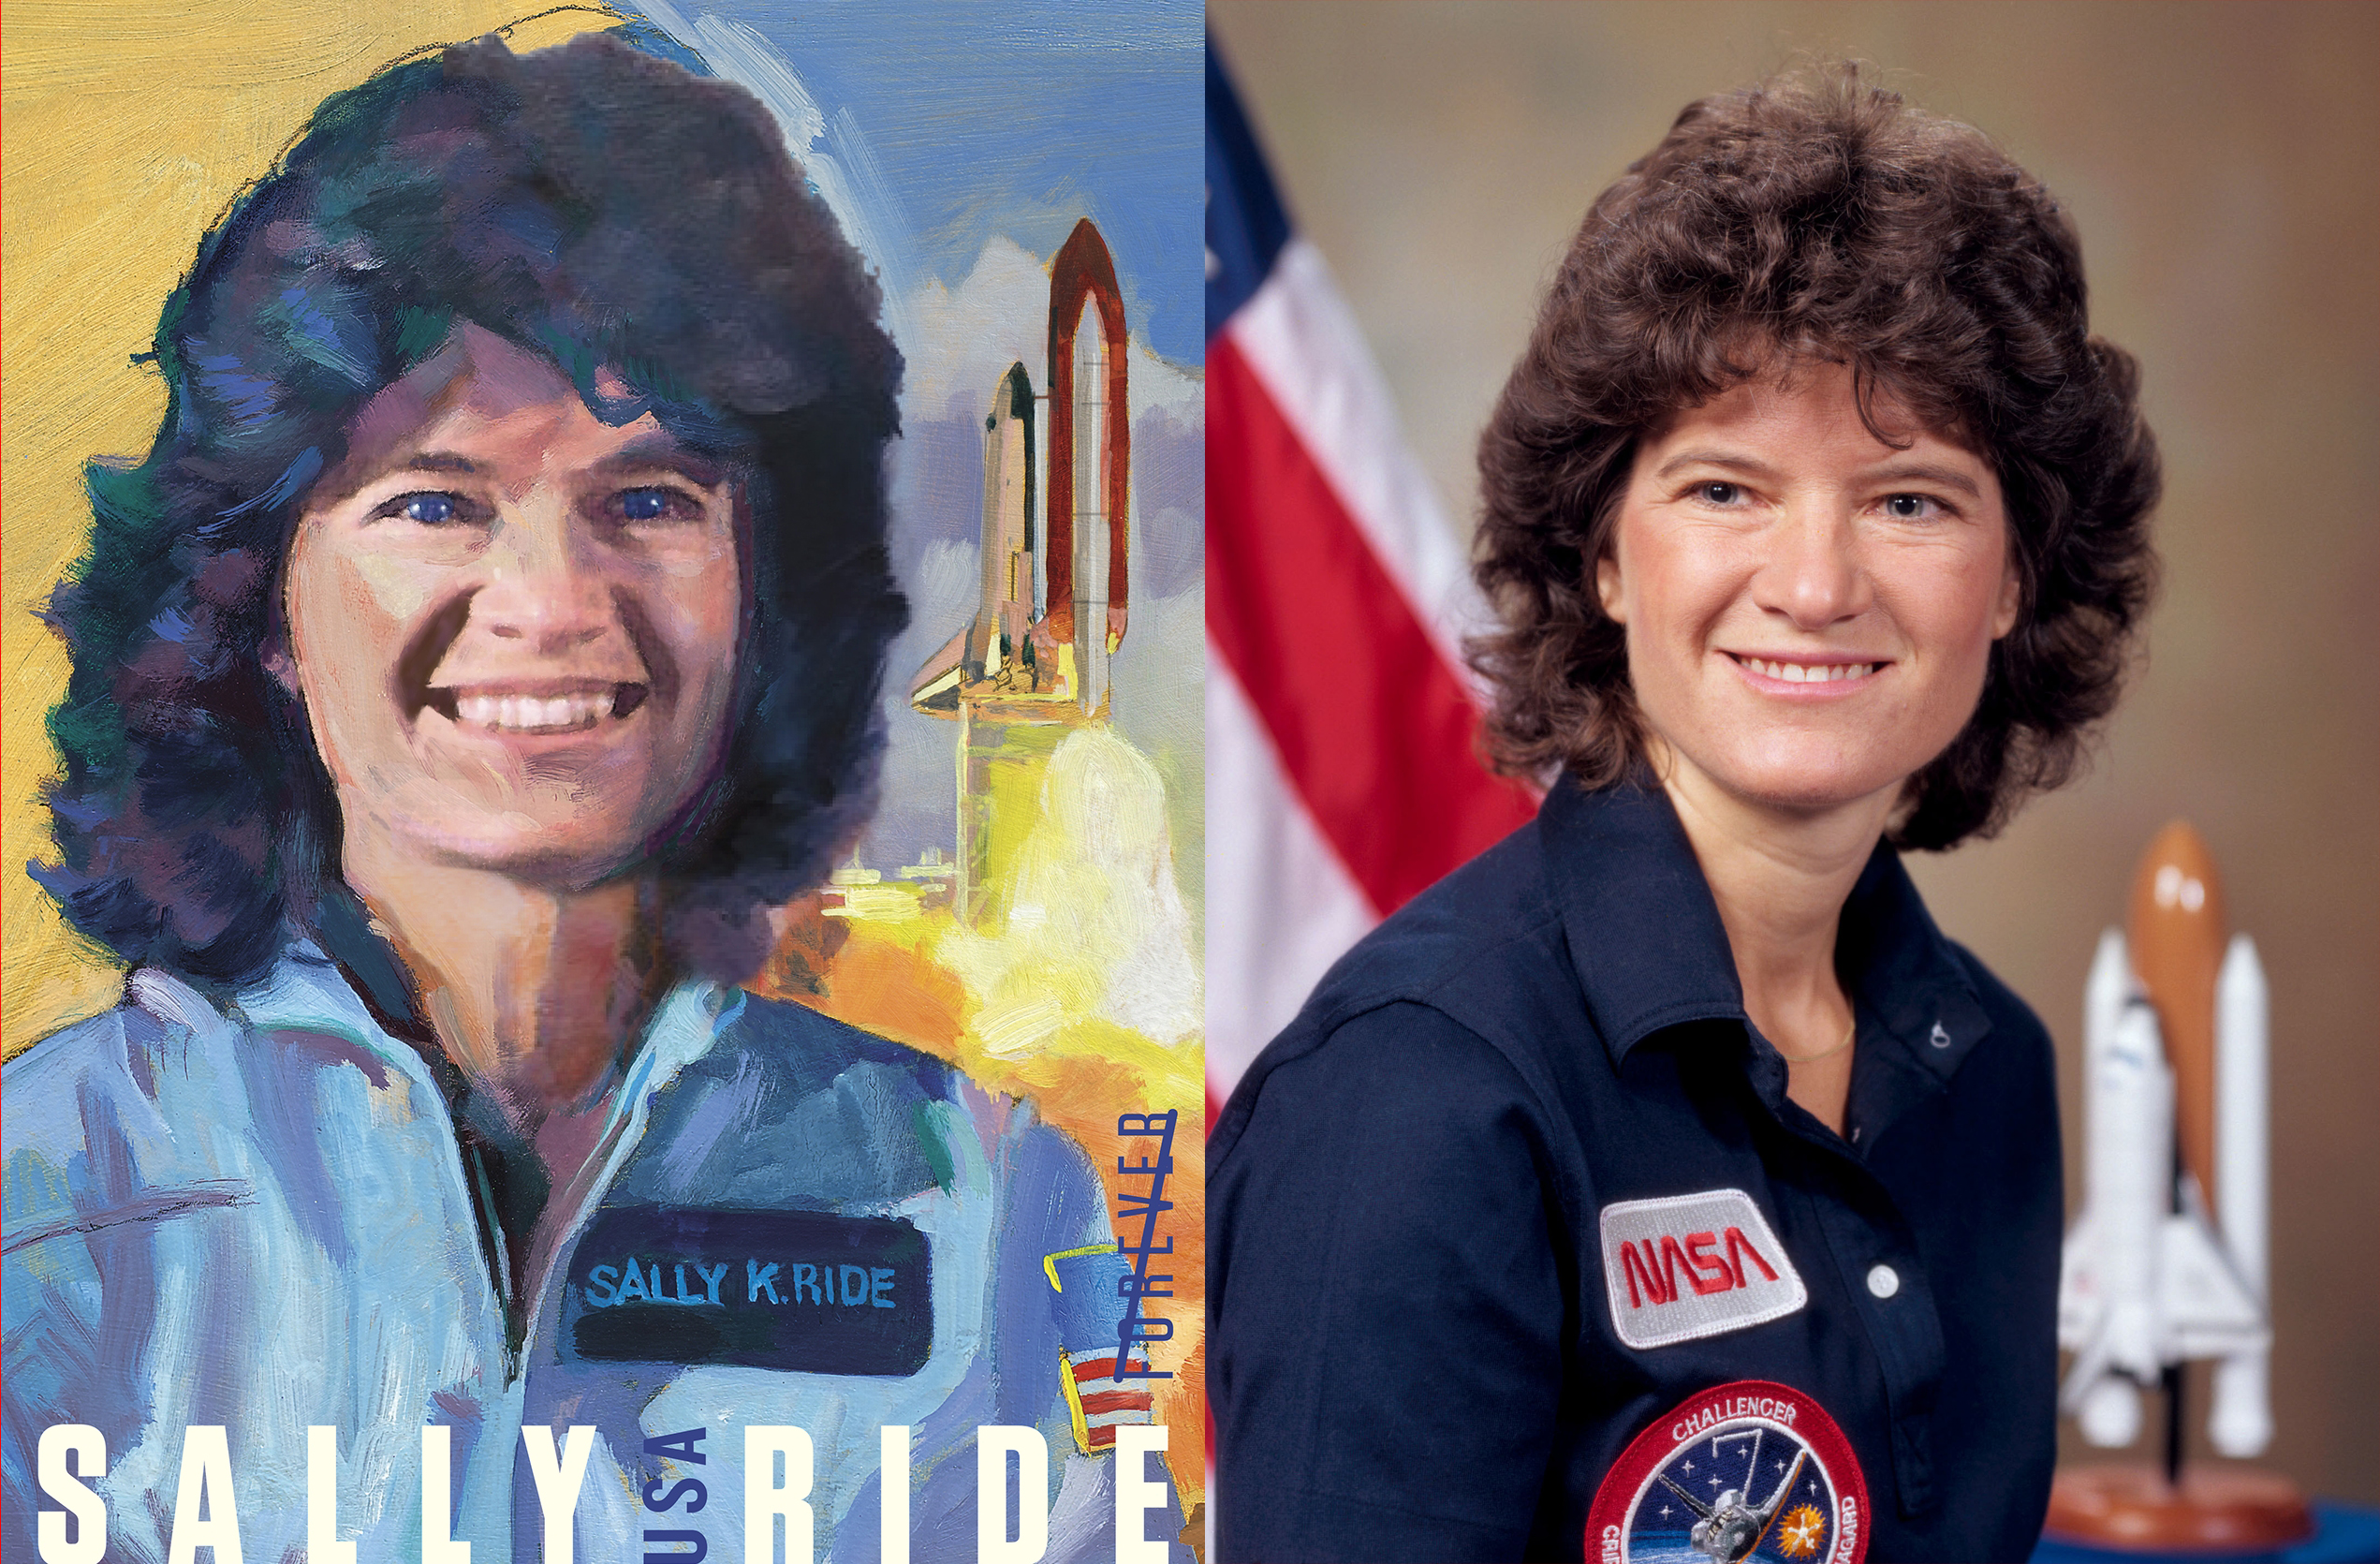 Sally Ride Is Getting Her Own Forever Stamp | Live Science